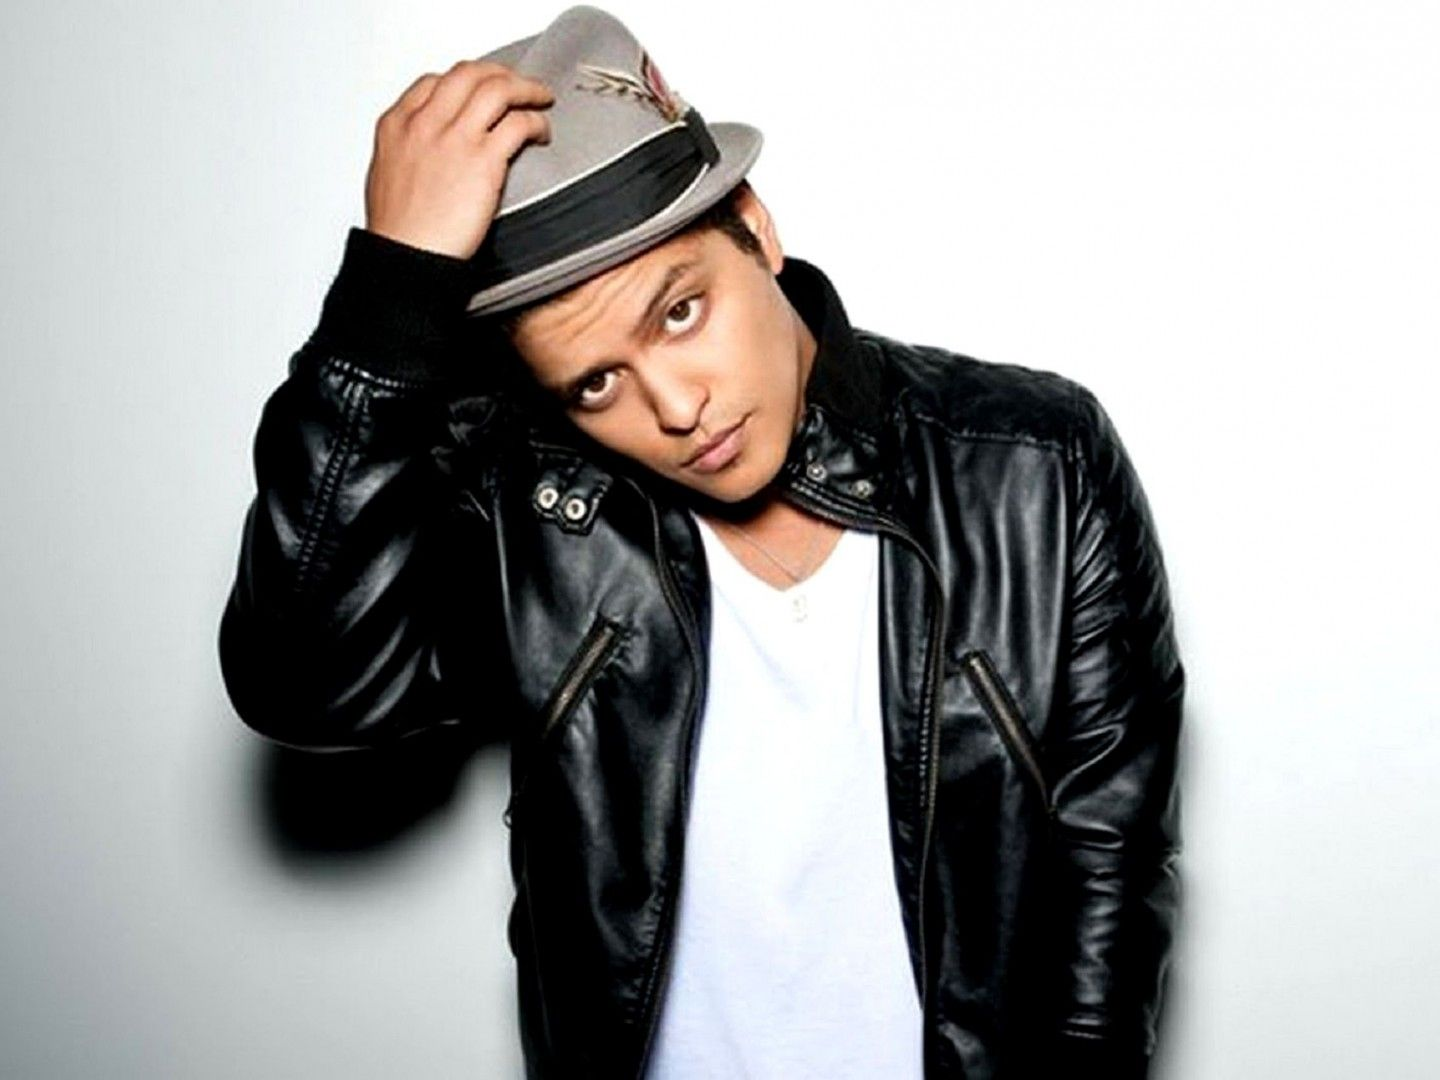 Wallpapers of the day bruno mars 1440x1080px bruno mars pic